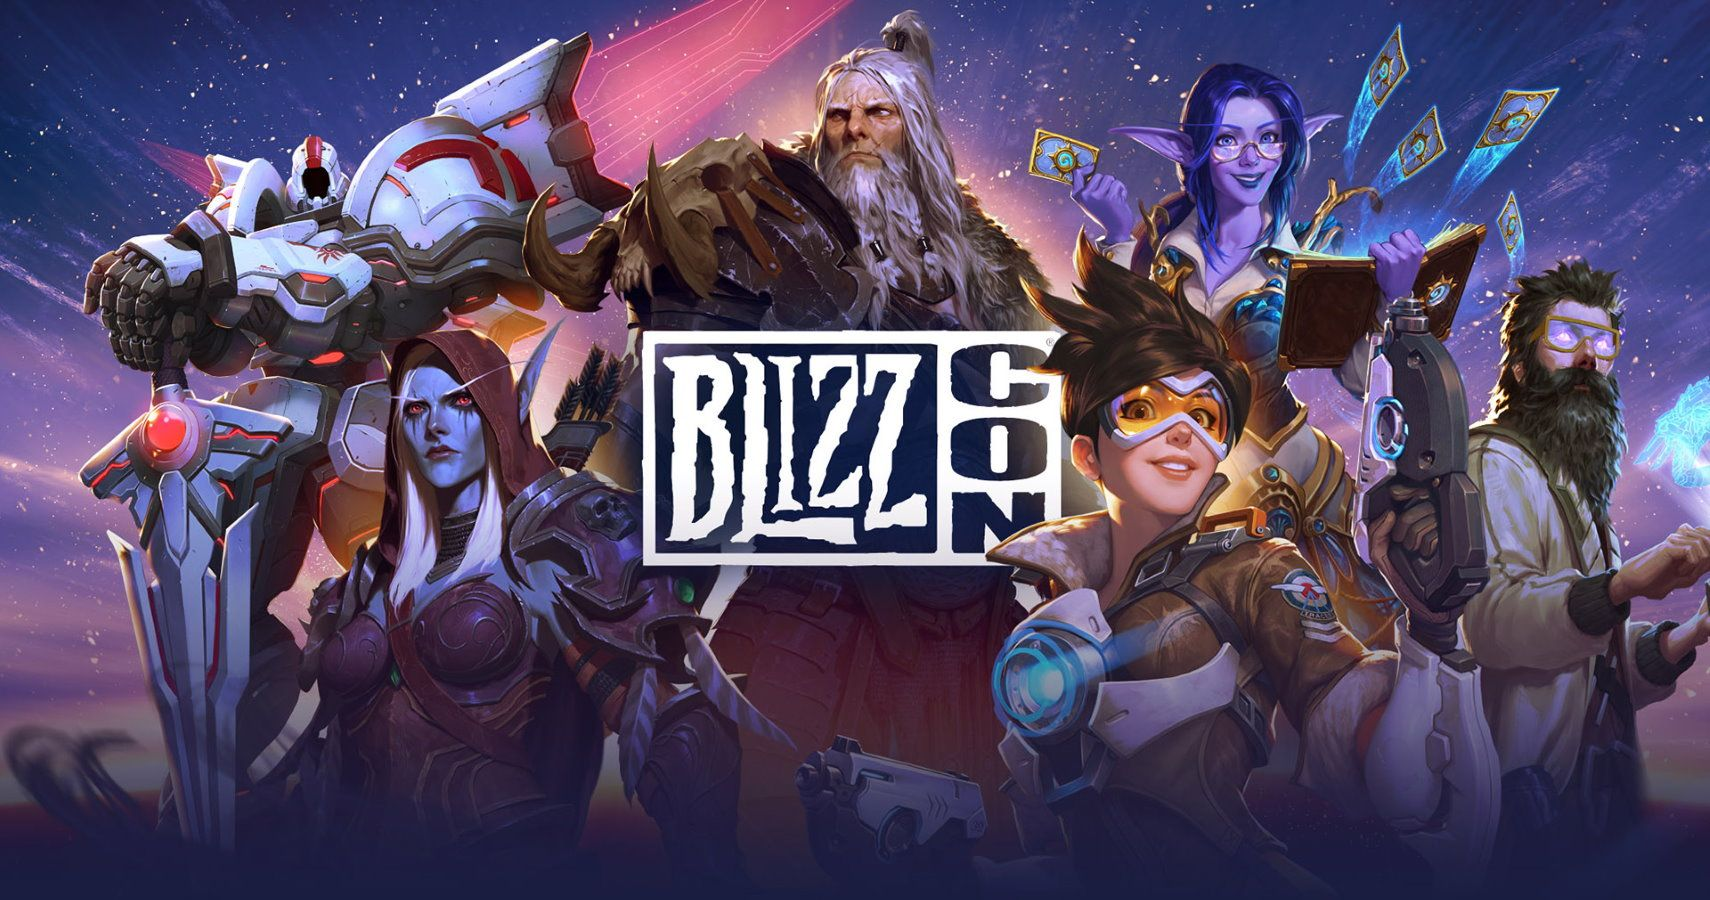 blizzcon 2019 schedule released